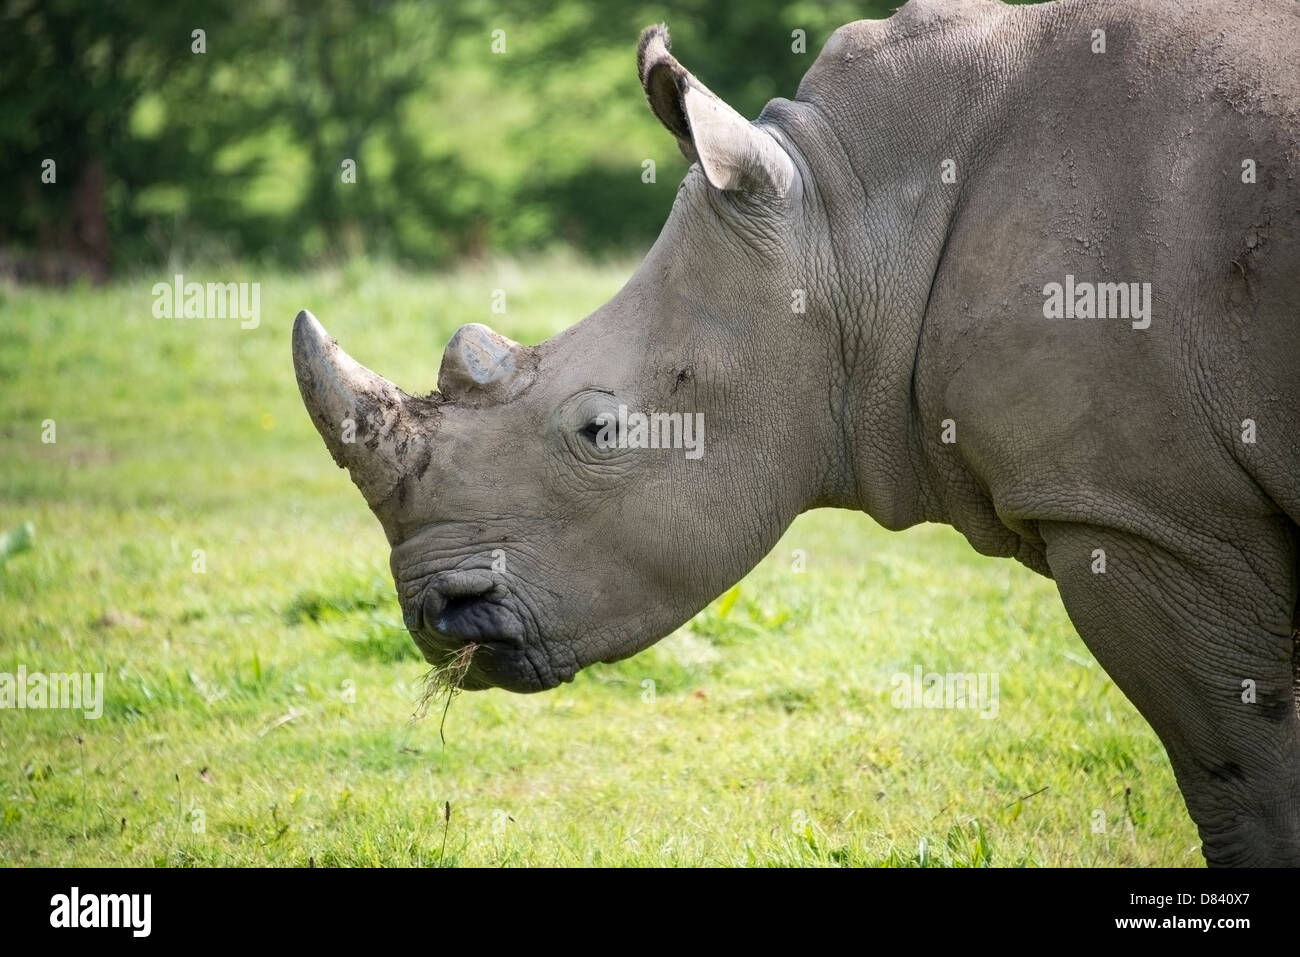 A head and neck portrait of a rhinoceros chewing grass - Stock Image